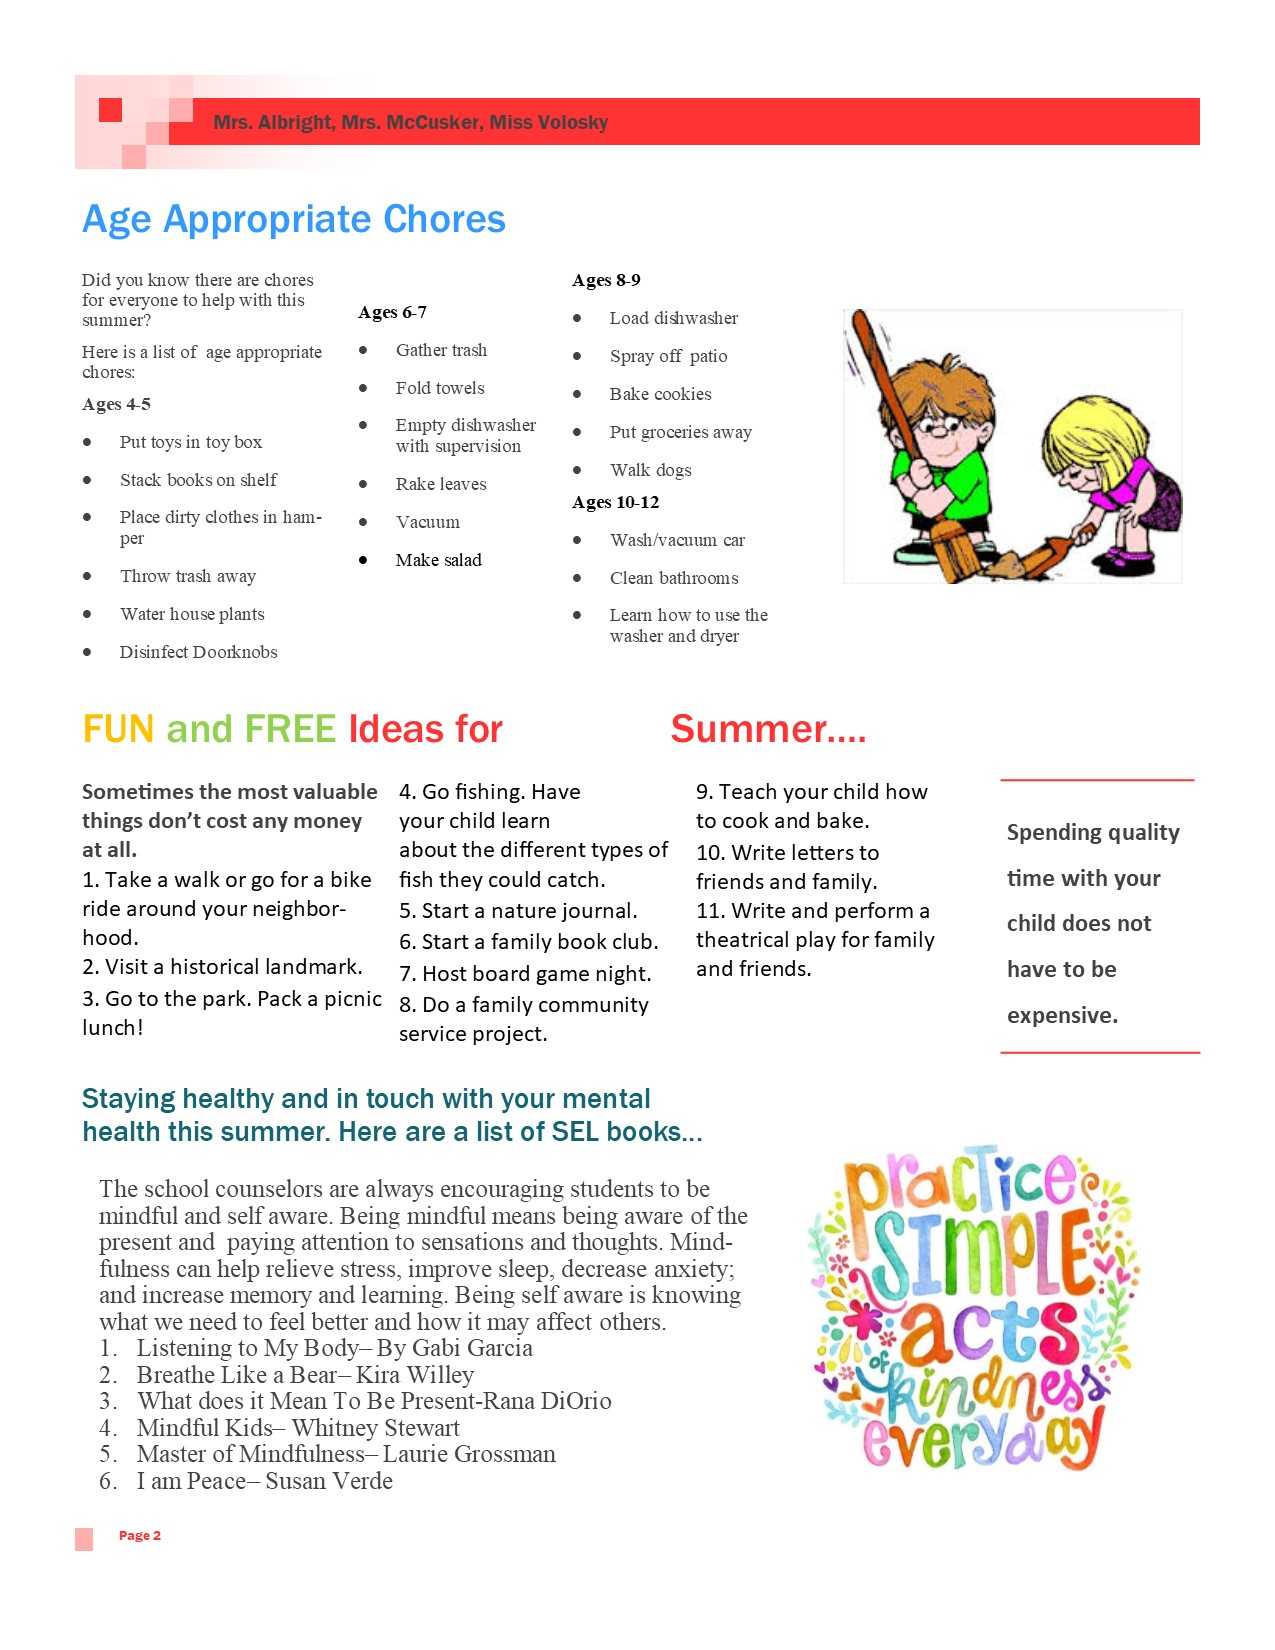 photo of age appropriate chores guide